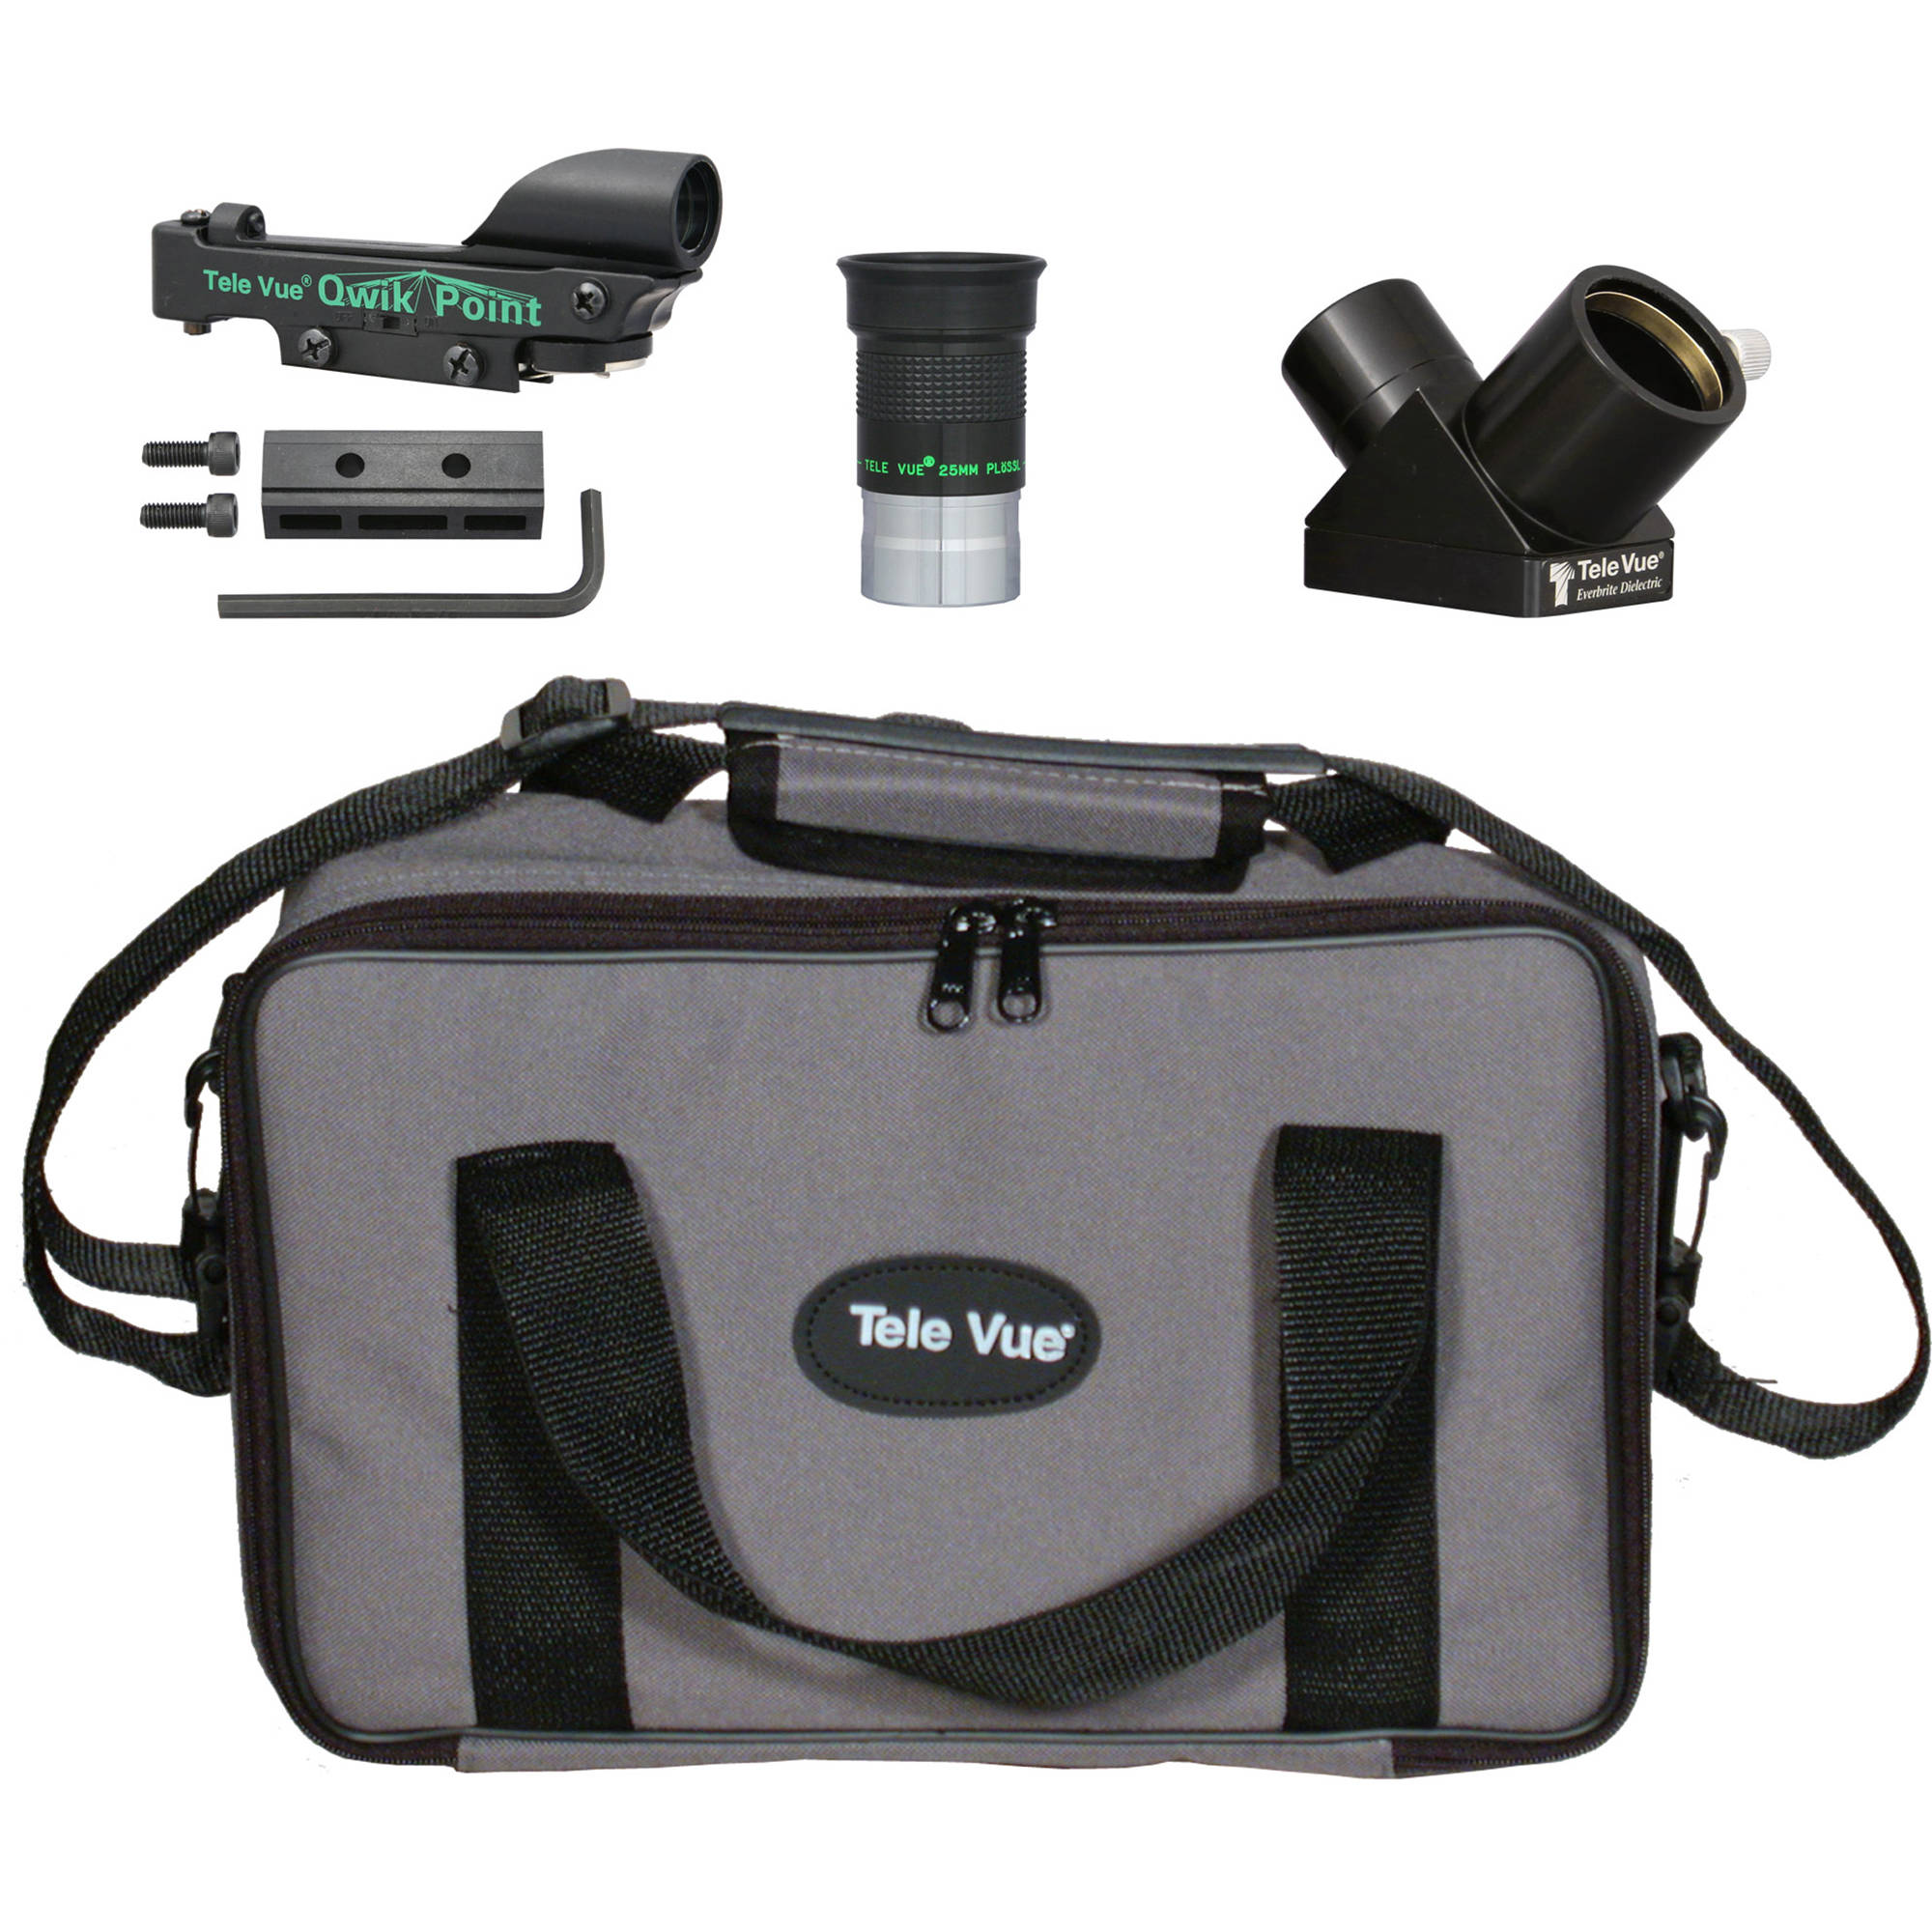 060fcfe92f2 tele vue tvp 1250 90 degree accessory package for 1392289.jpg